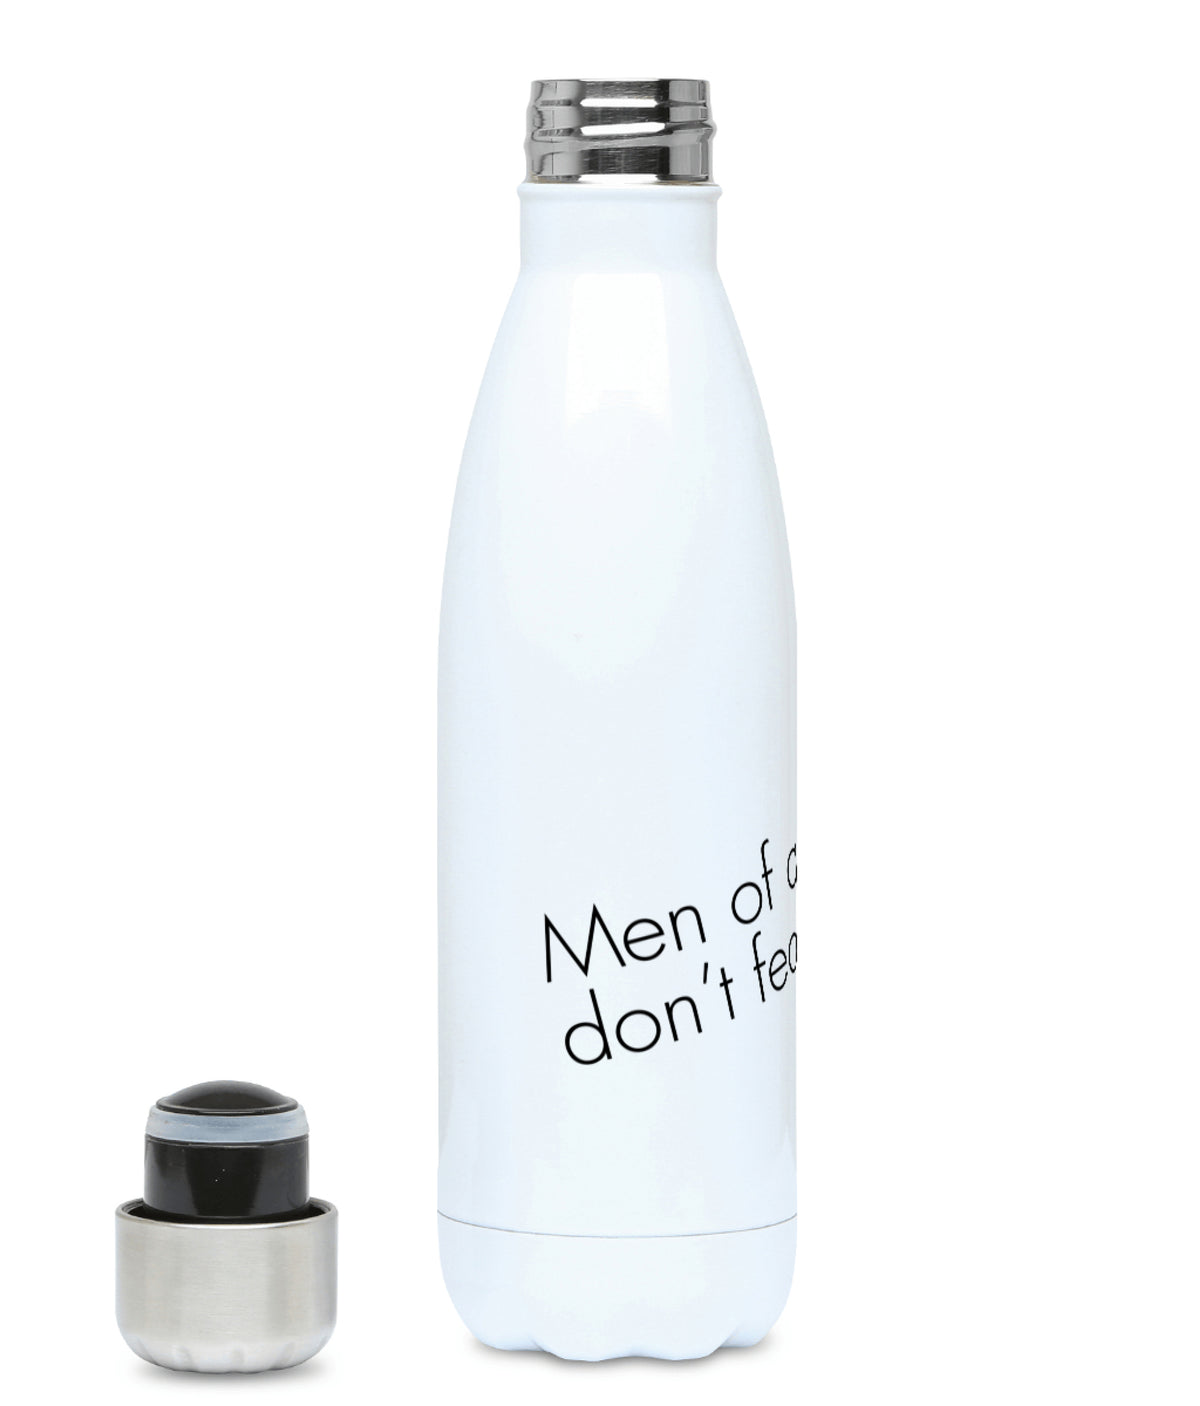 Feminist Water Bottle - Men Of Quality Don't Fear Equality - Left